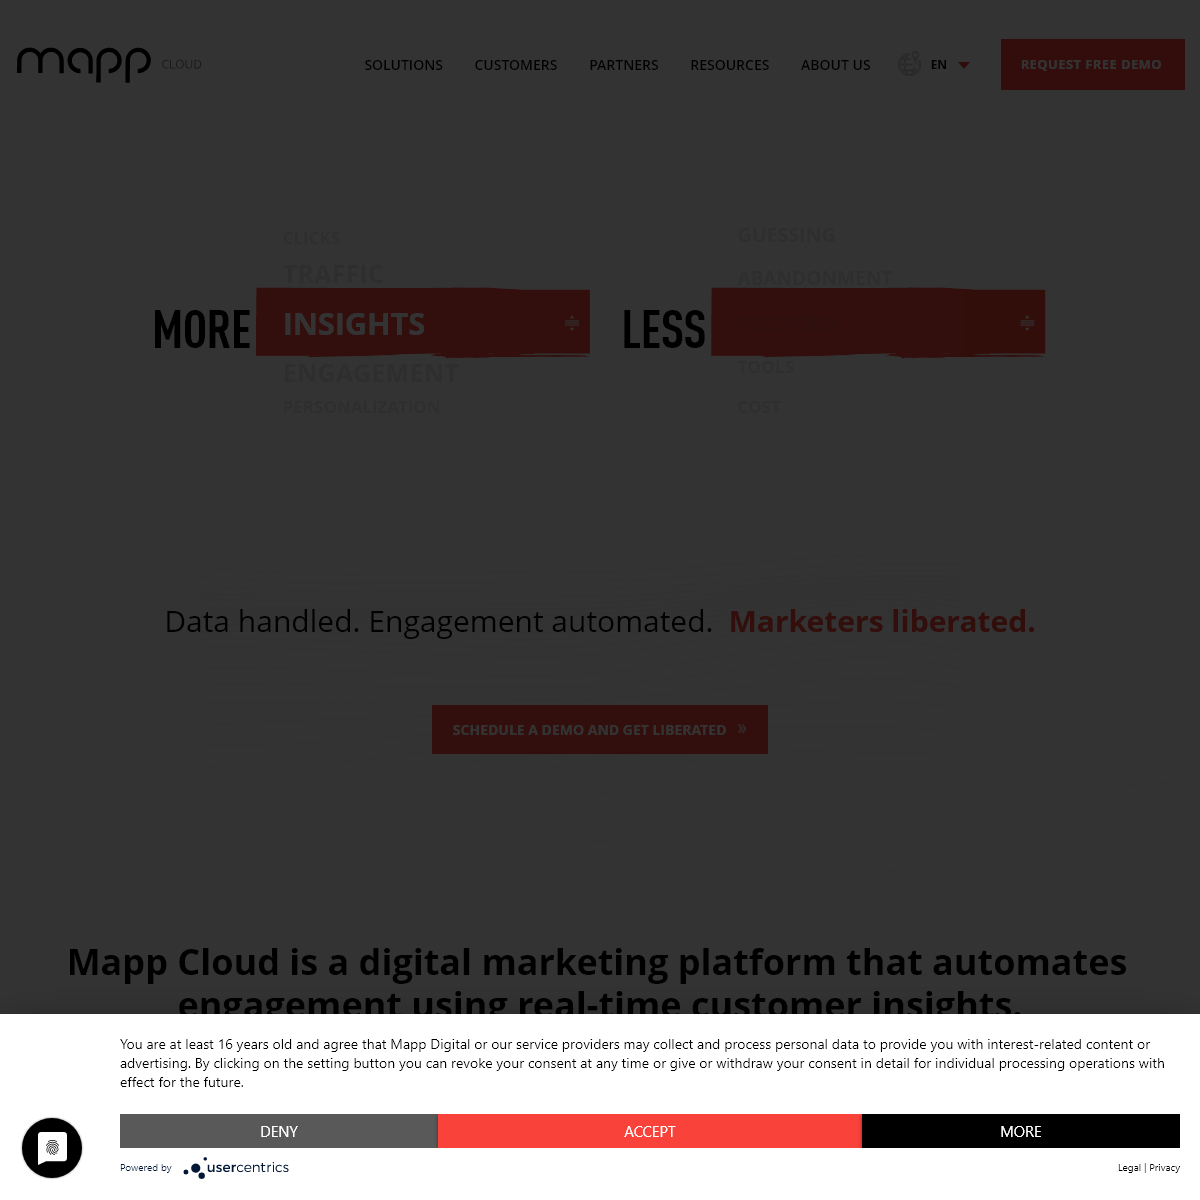 Mapp - A digital marketing platform that automates engagement using real-time customer insights.